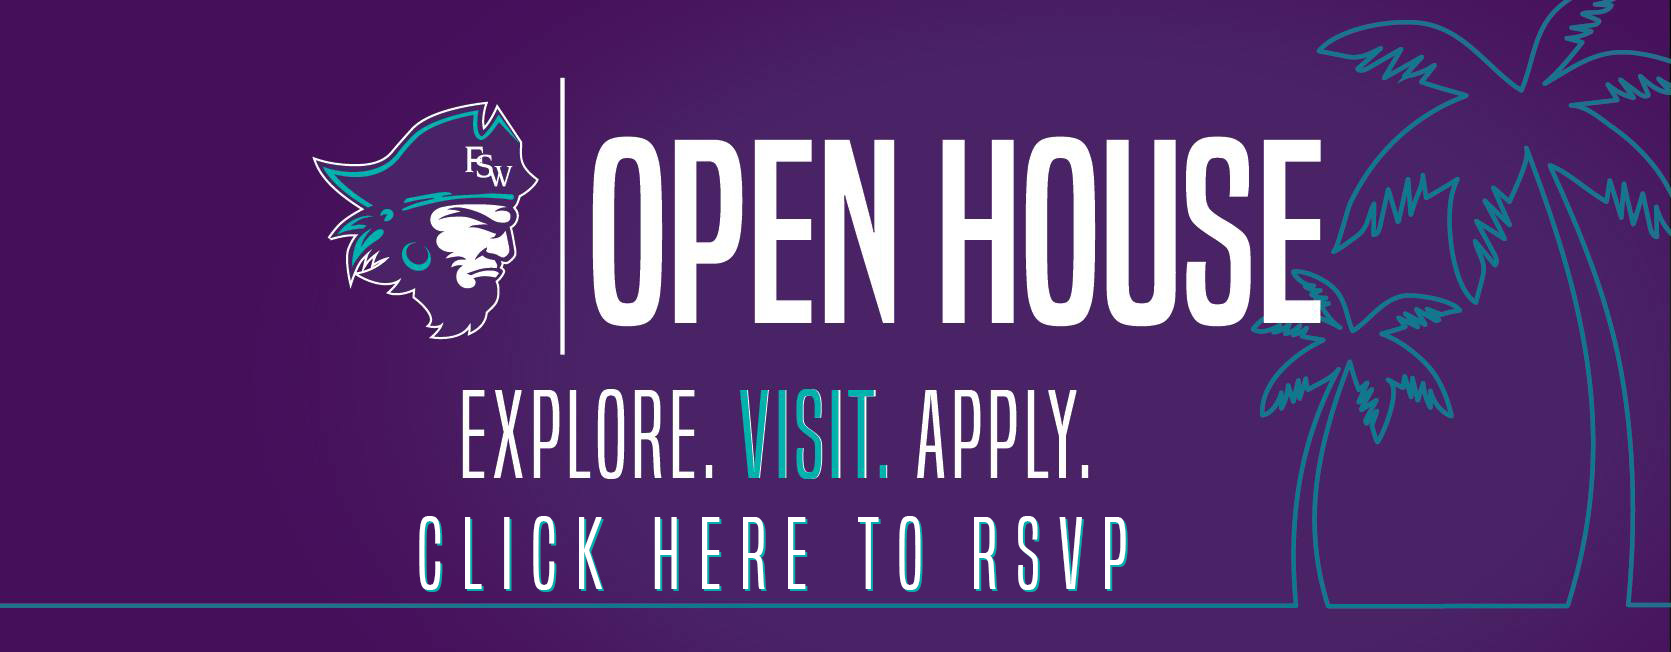 FSW Open House. Explore, Visit, Apply. Click here to RSVP.